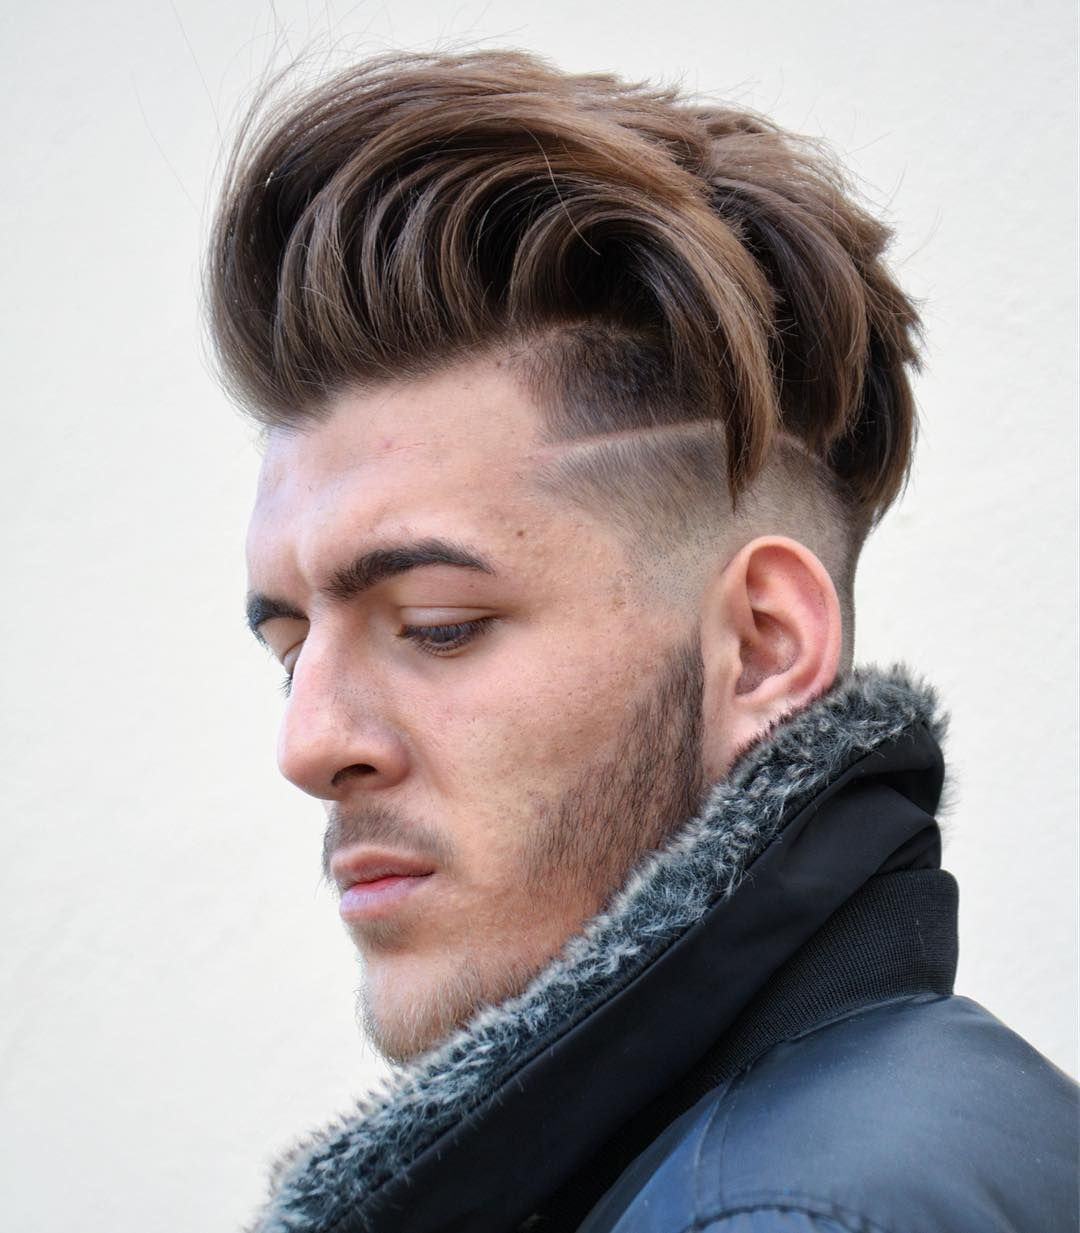 45 cool men's hairstyles 2017 | hair trends, haircuts and